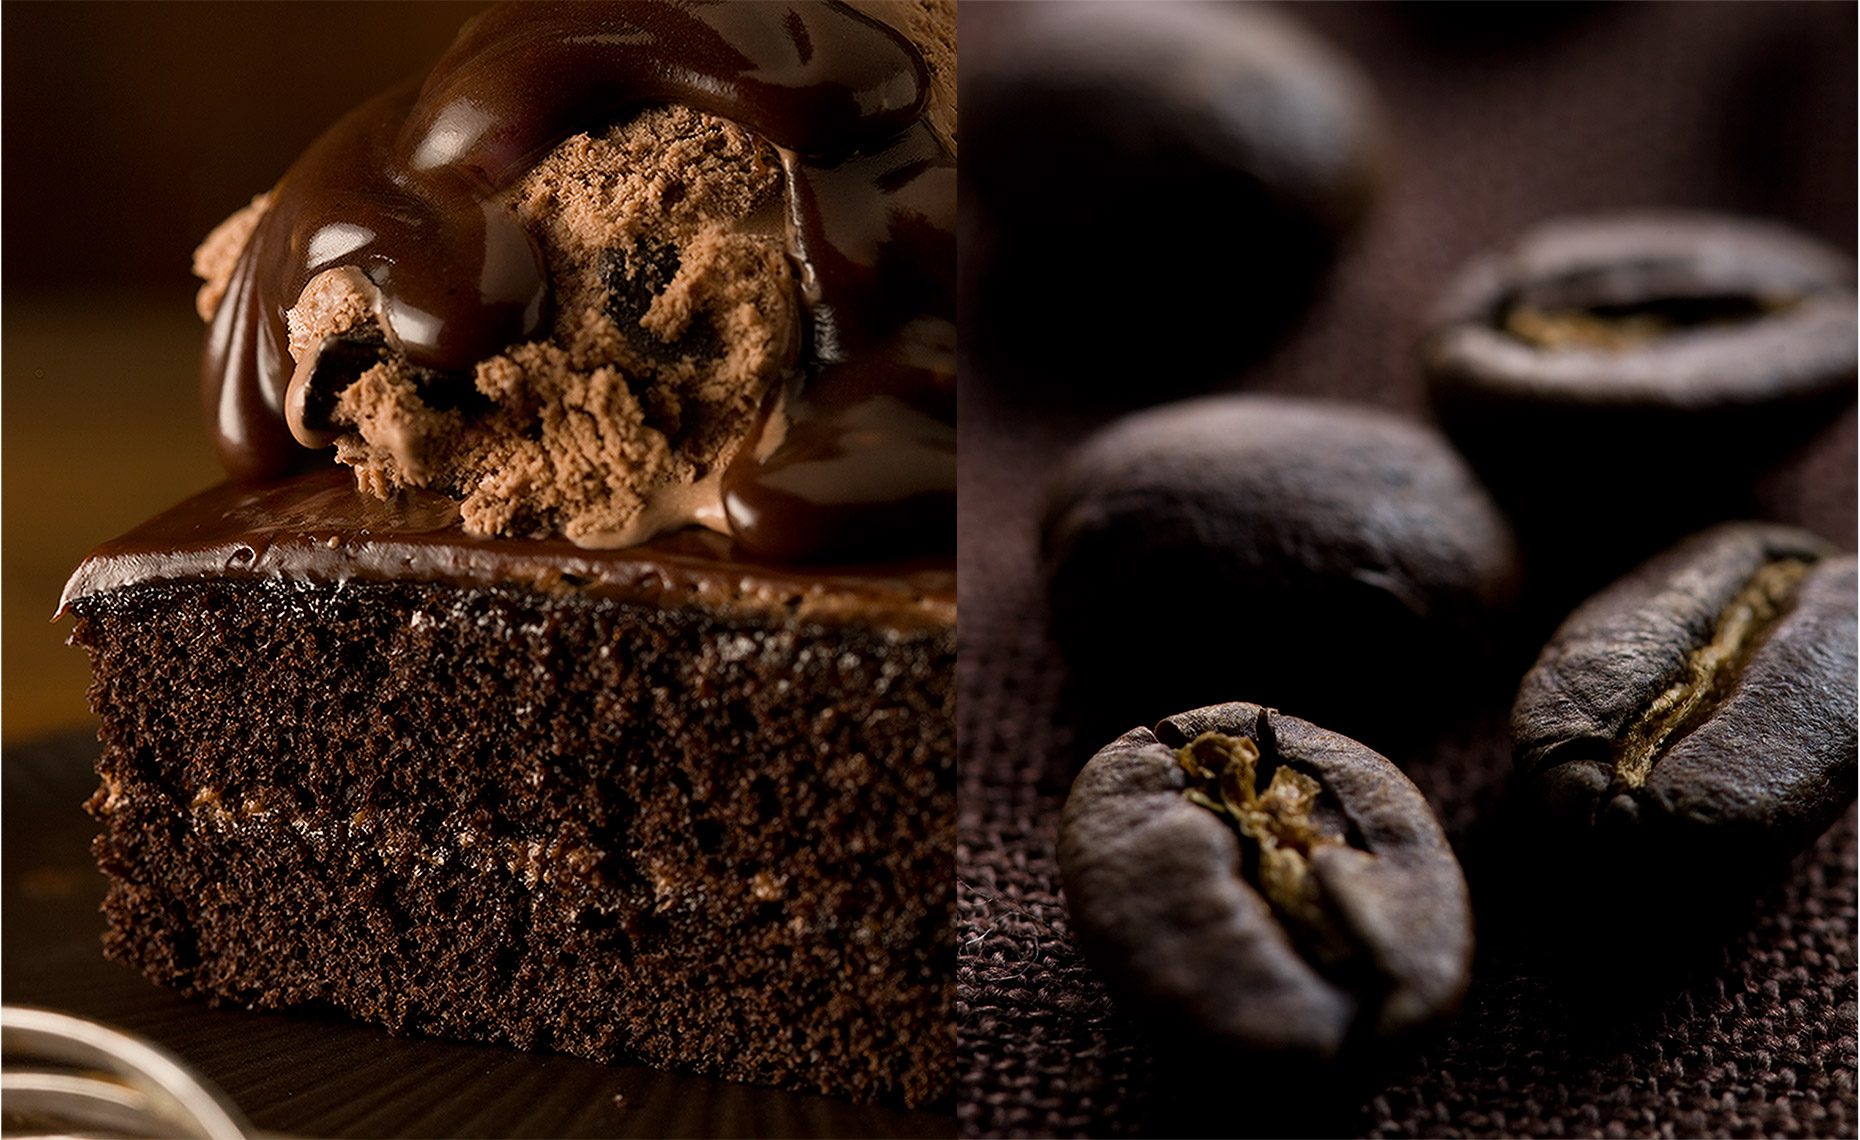 Food Photographer, Cake Photography, Ice Cream Photography, Dessert Photography | Pohuski Studios, Chocolate Cake Coffee Beans